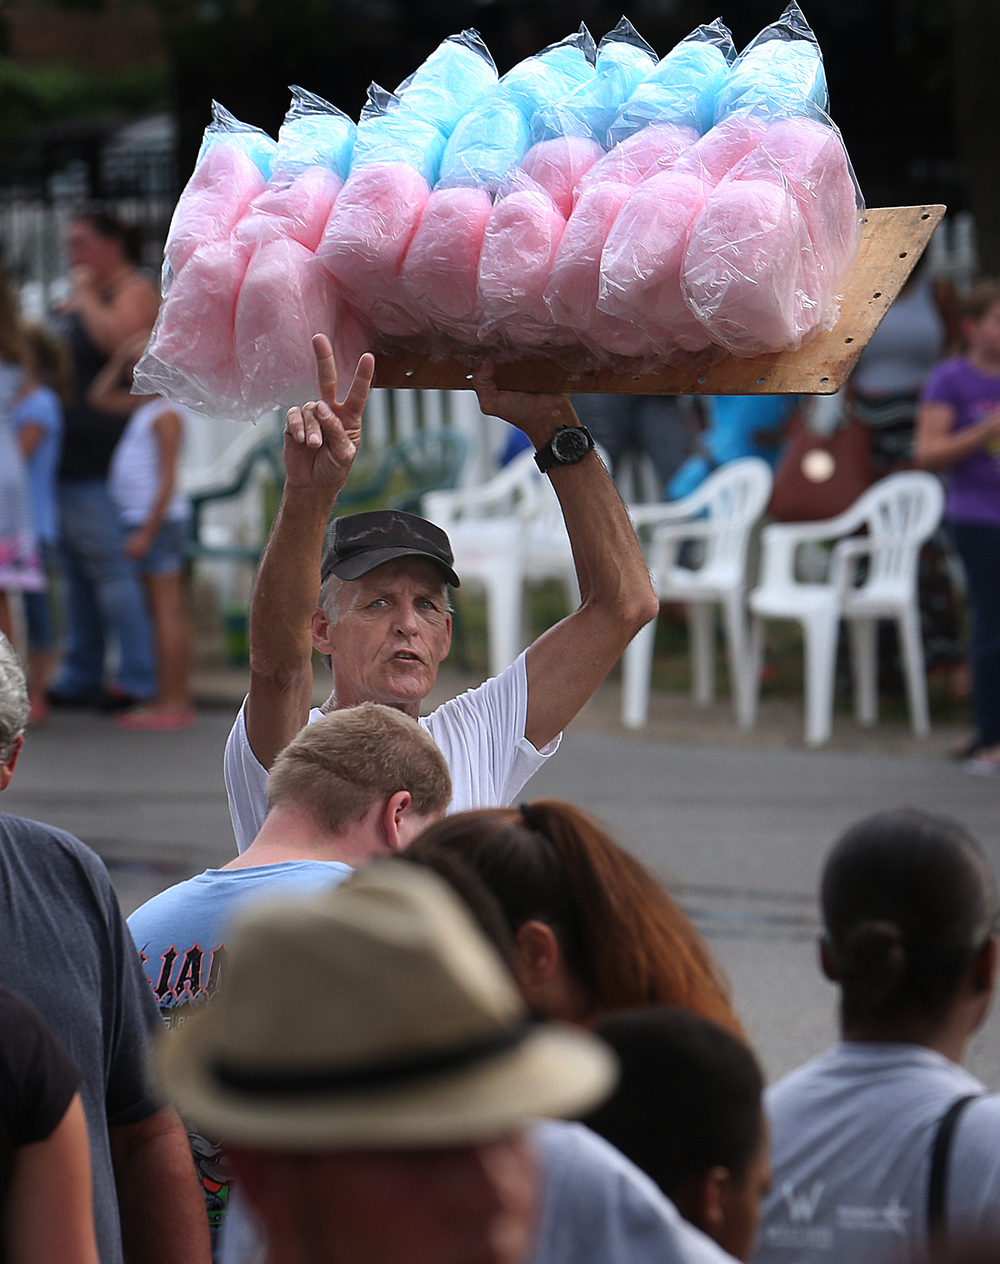 Cotton Candy was being sold along the route. David Spencer/The State Journal-Register